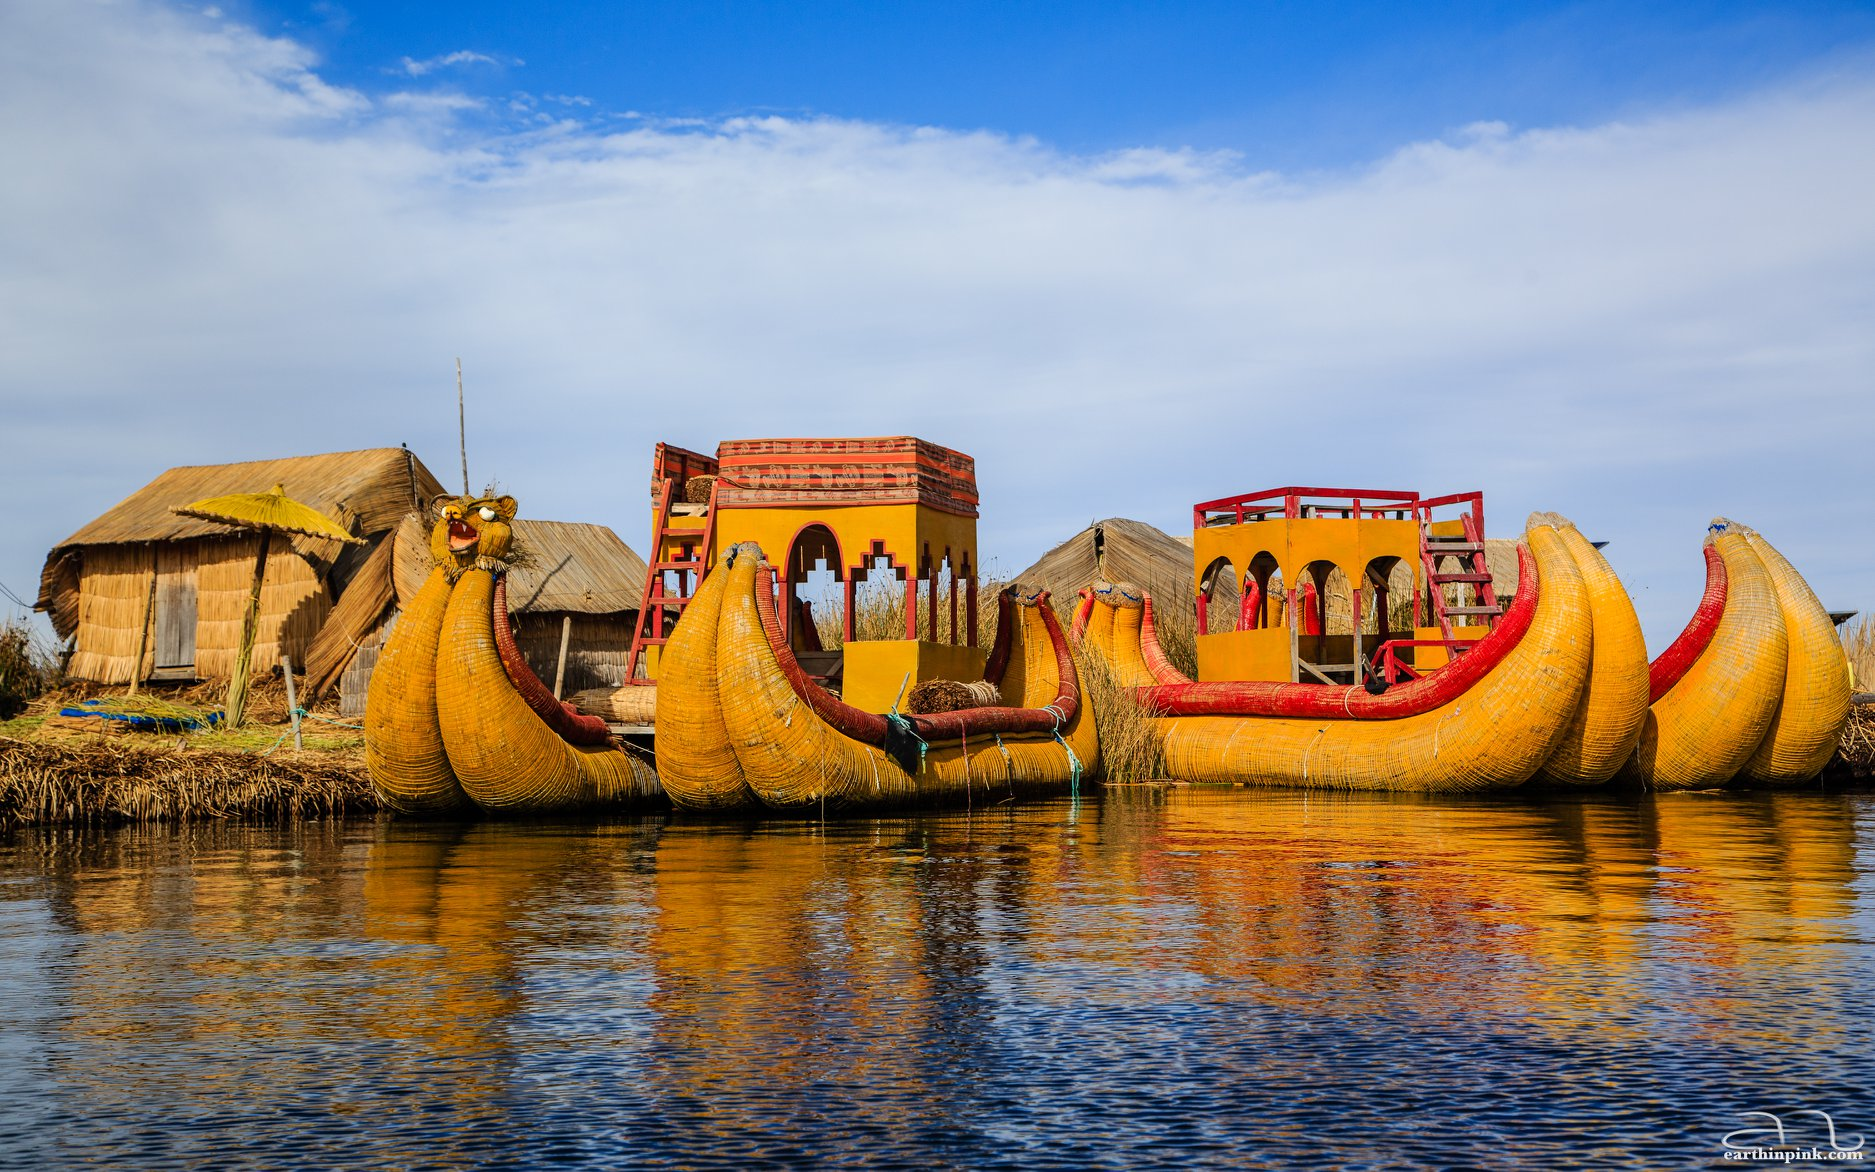 Uros floating islands, traditionally made entirely out of reeds, on Lake Titicaca, Peru